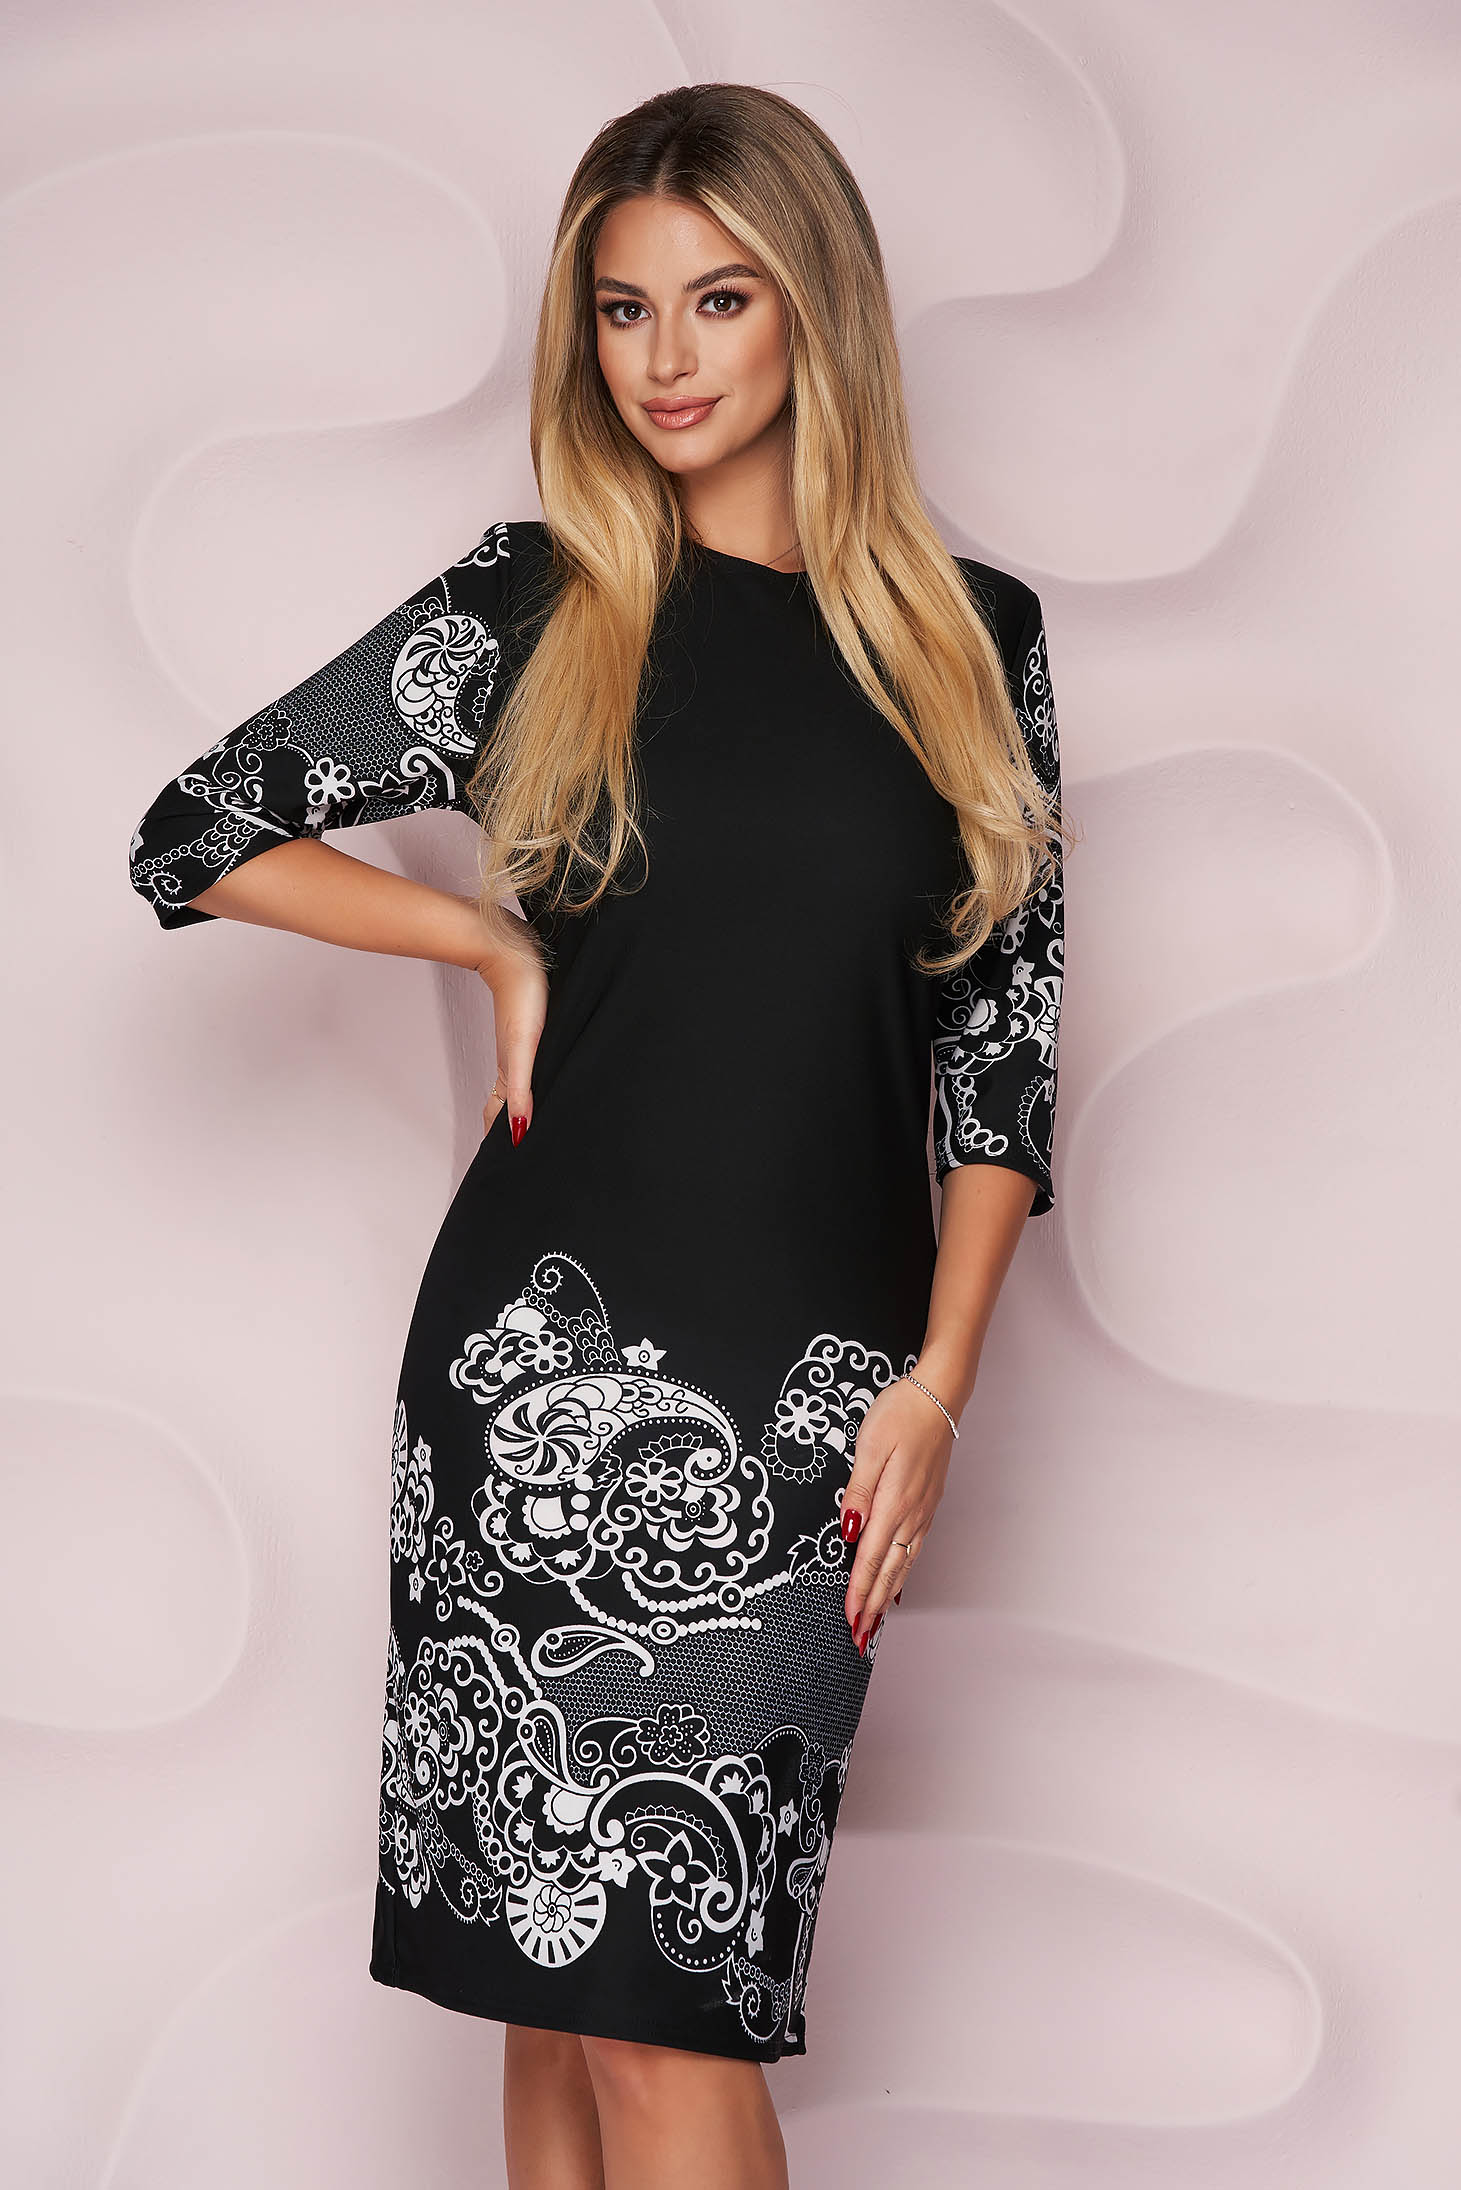 Black dress straight office midi thin fabric with graphic details slightly elastic fabric